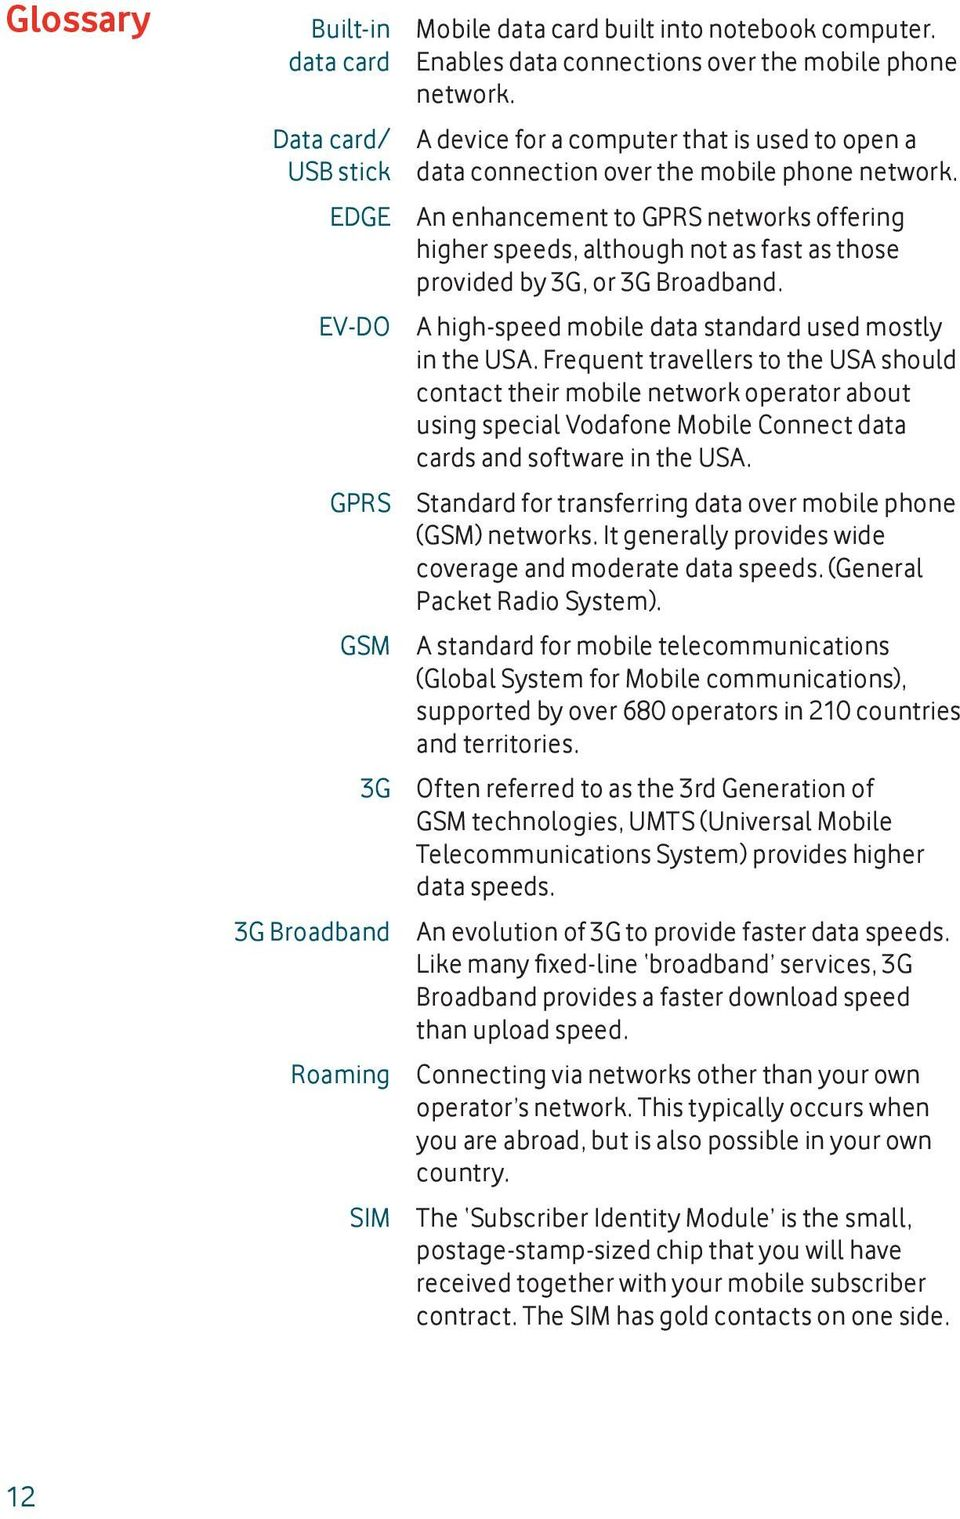 An enhancement to GPRS networks offering higher speeds, although not as fast as those provided by 3G, or 3G Broadband. A high-speed mobile data standard used mostly in the USA.